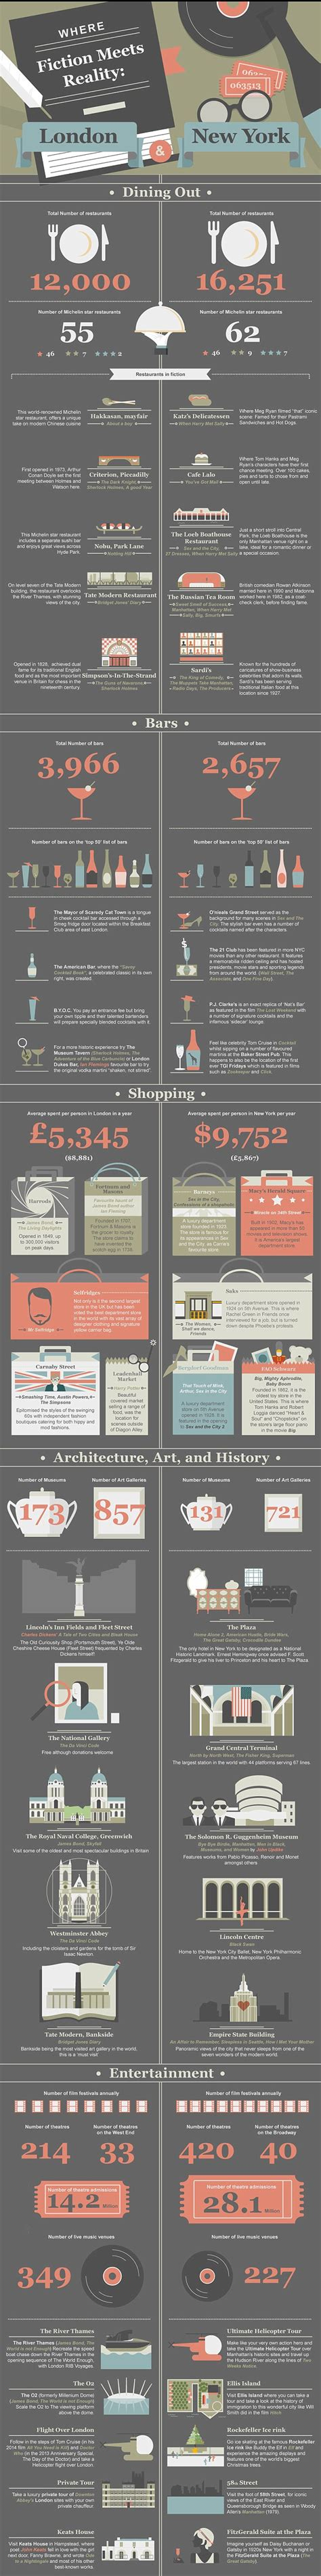 London Vs New York Infographic Compares The Two Cities